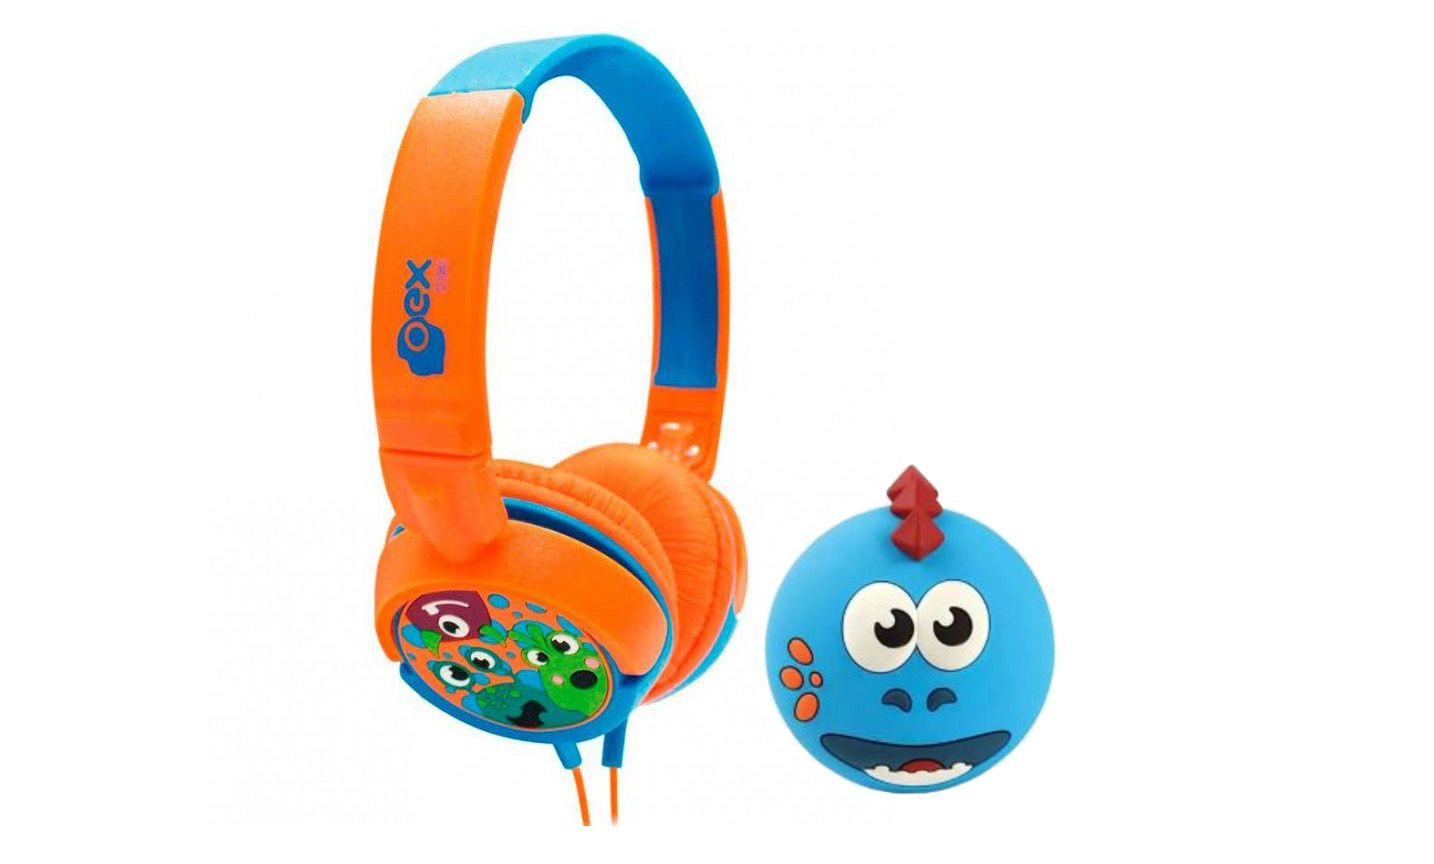 Caixinha Som Infantil Bluetooth Oex Dino Sk302 + Headphone Boo Hp-301